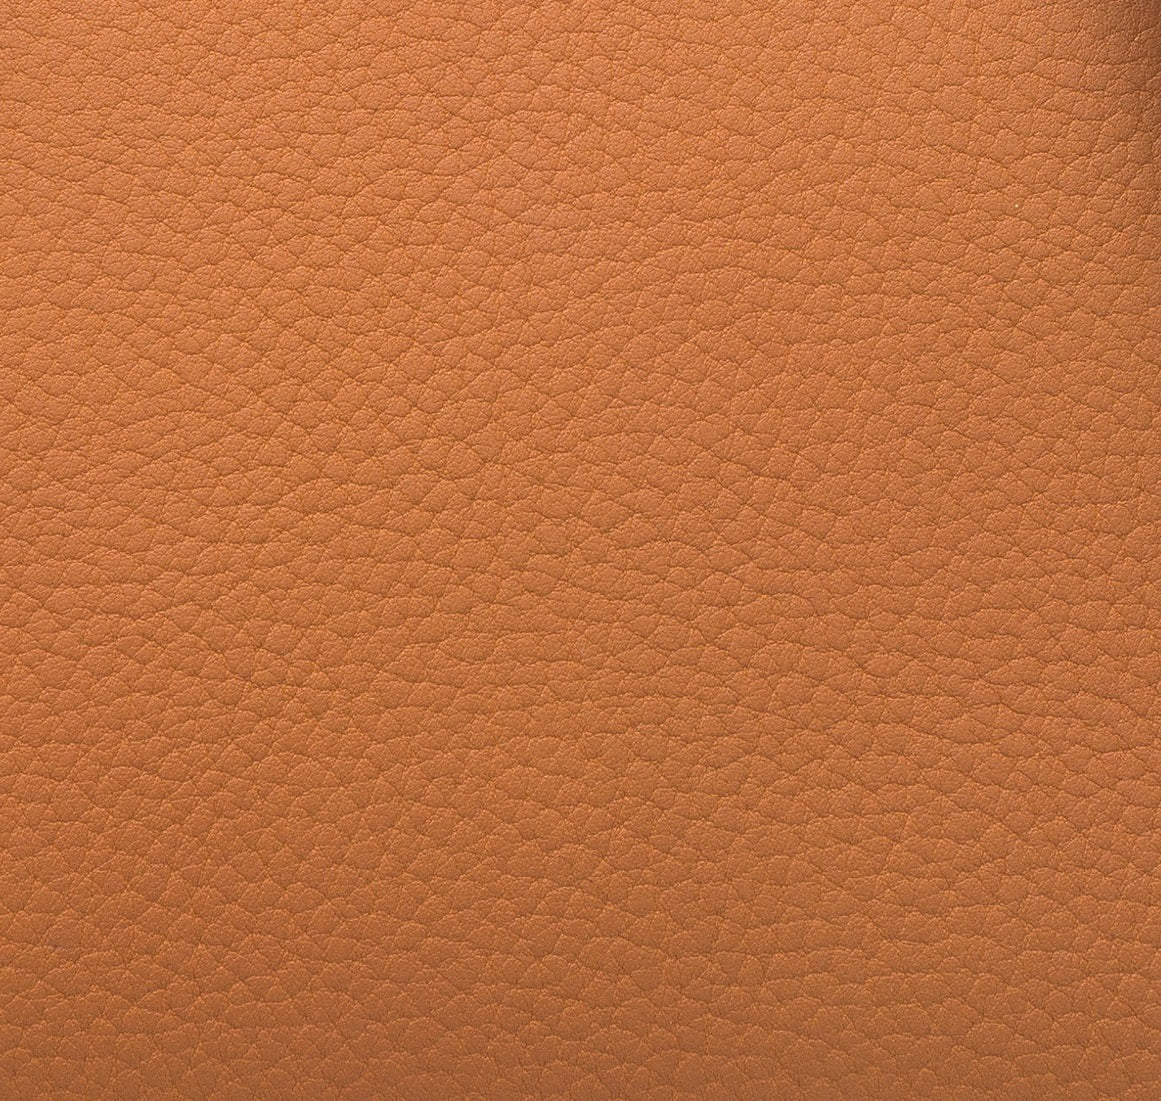 Ultimate Hermes Leathers Guide: What Are Hermes Bags Made Of?  Hermes Fjord leather